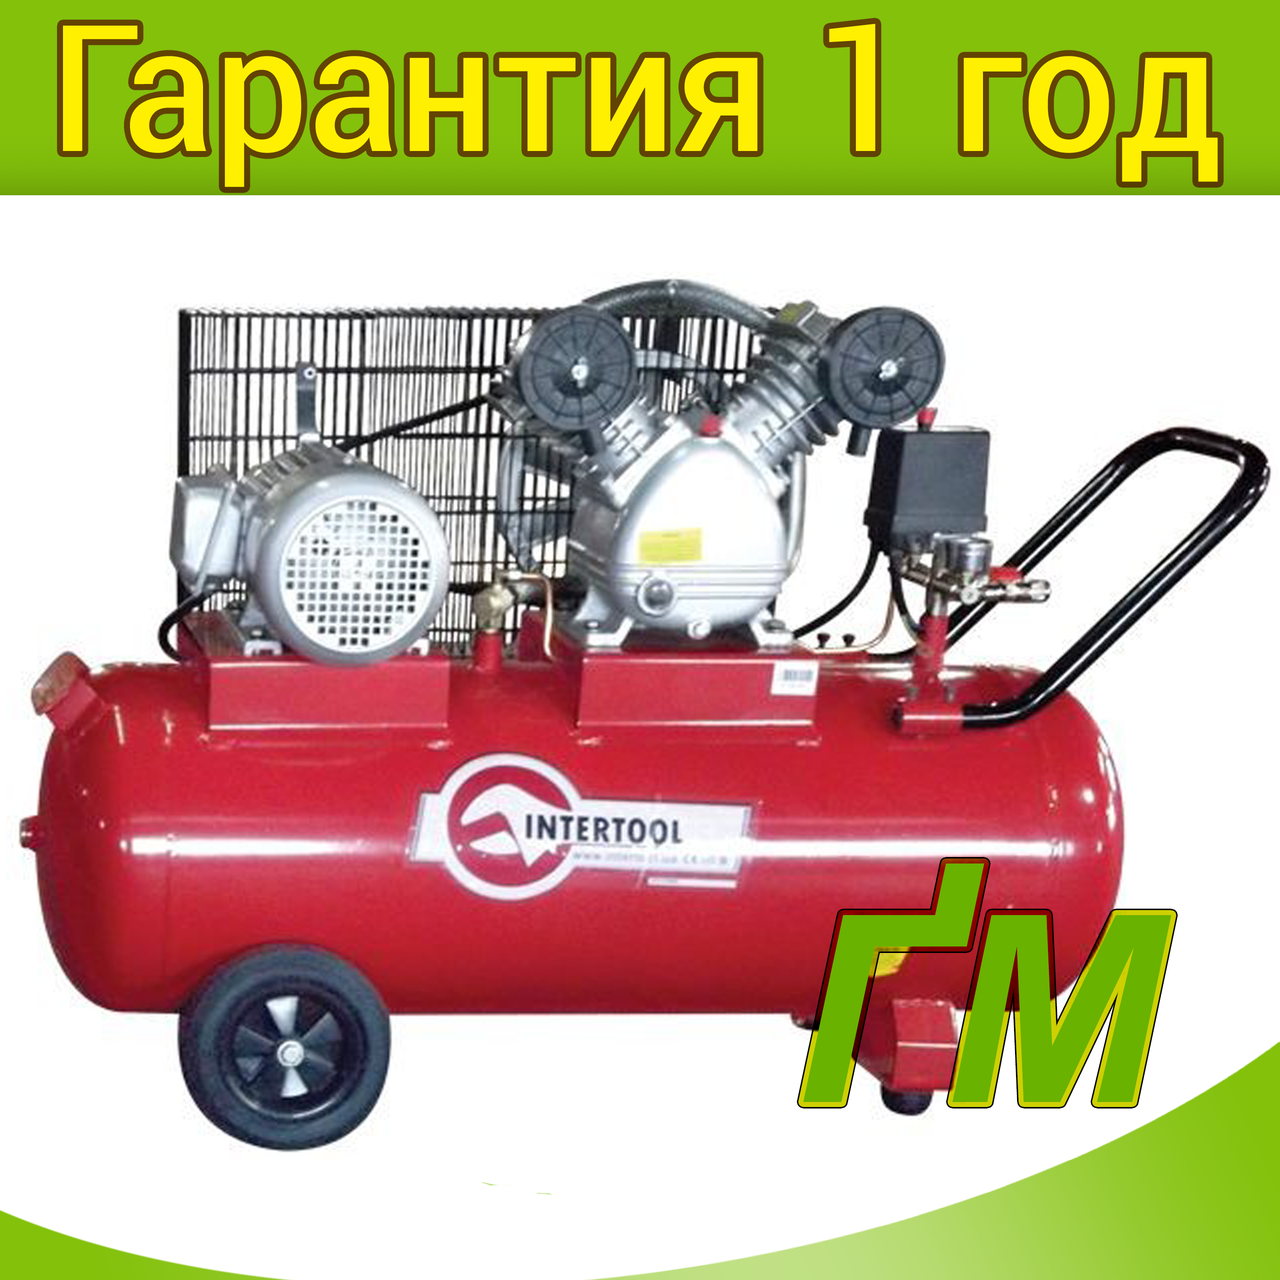 Компрессор INTERTOOL PT-0013 100 л, 3 кВт, 380 В, 8 атм, 500 л/мин, 2 цилиндра.